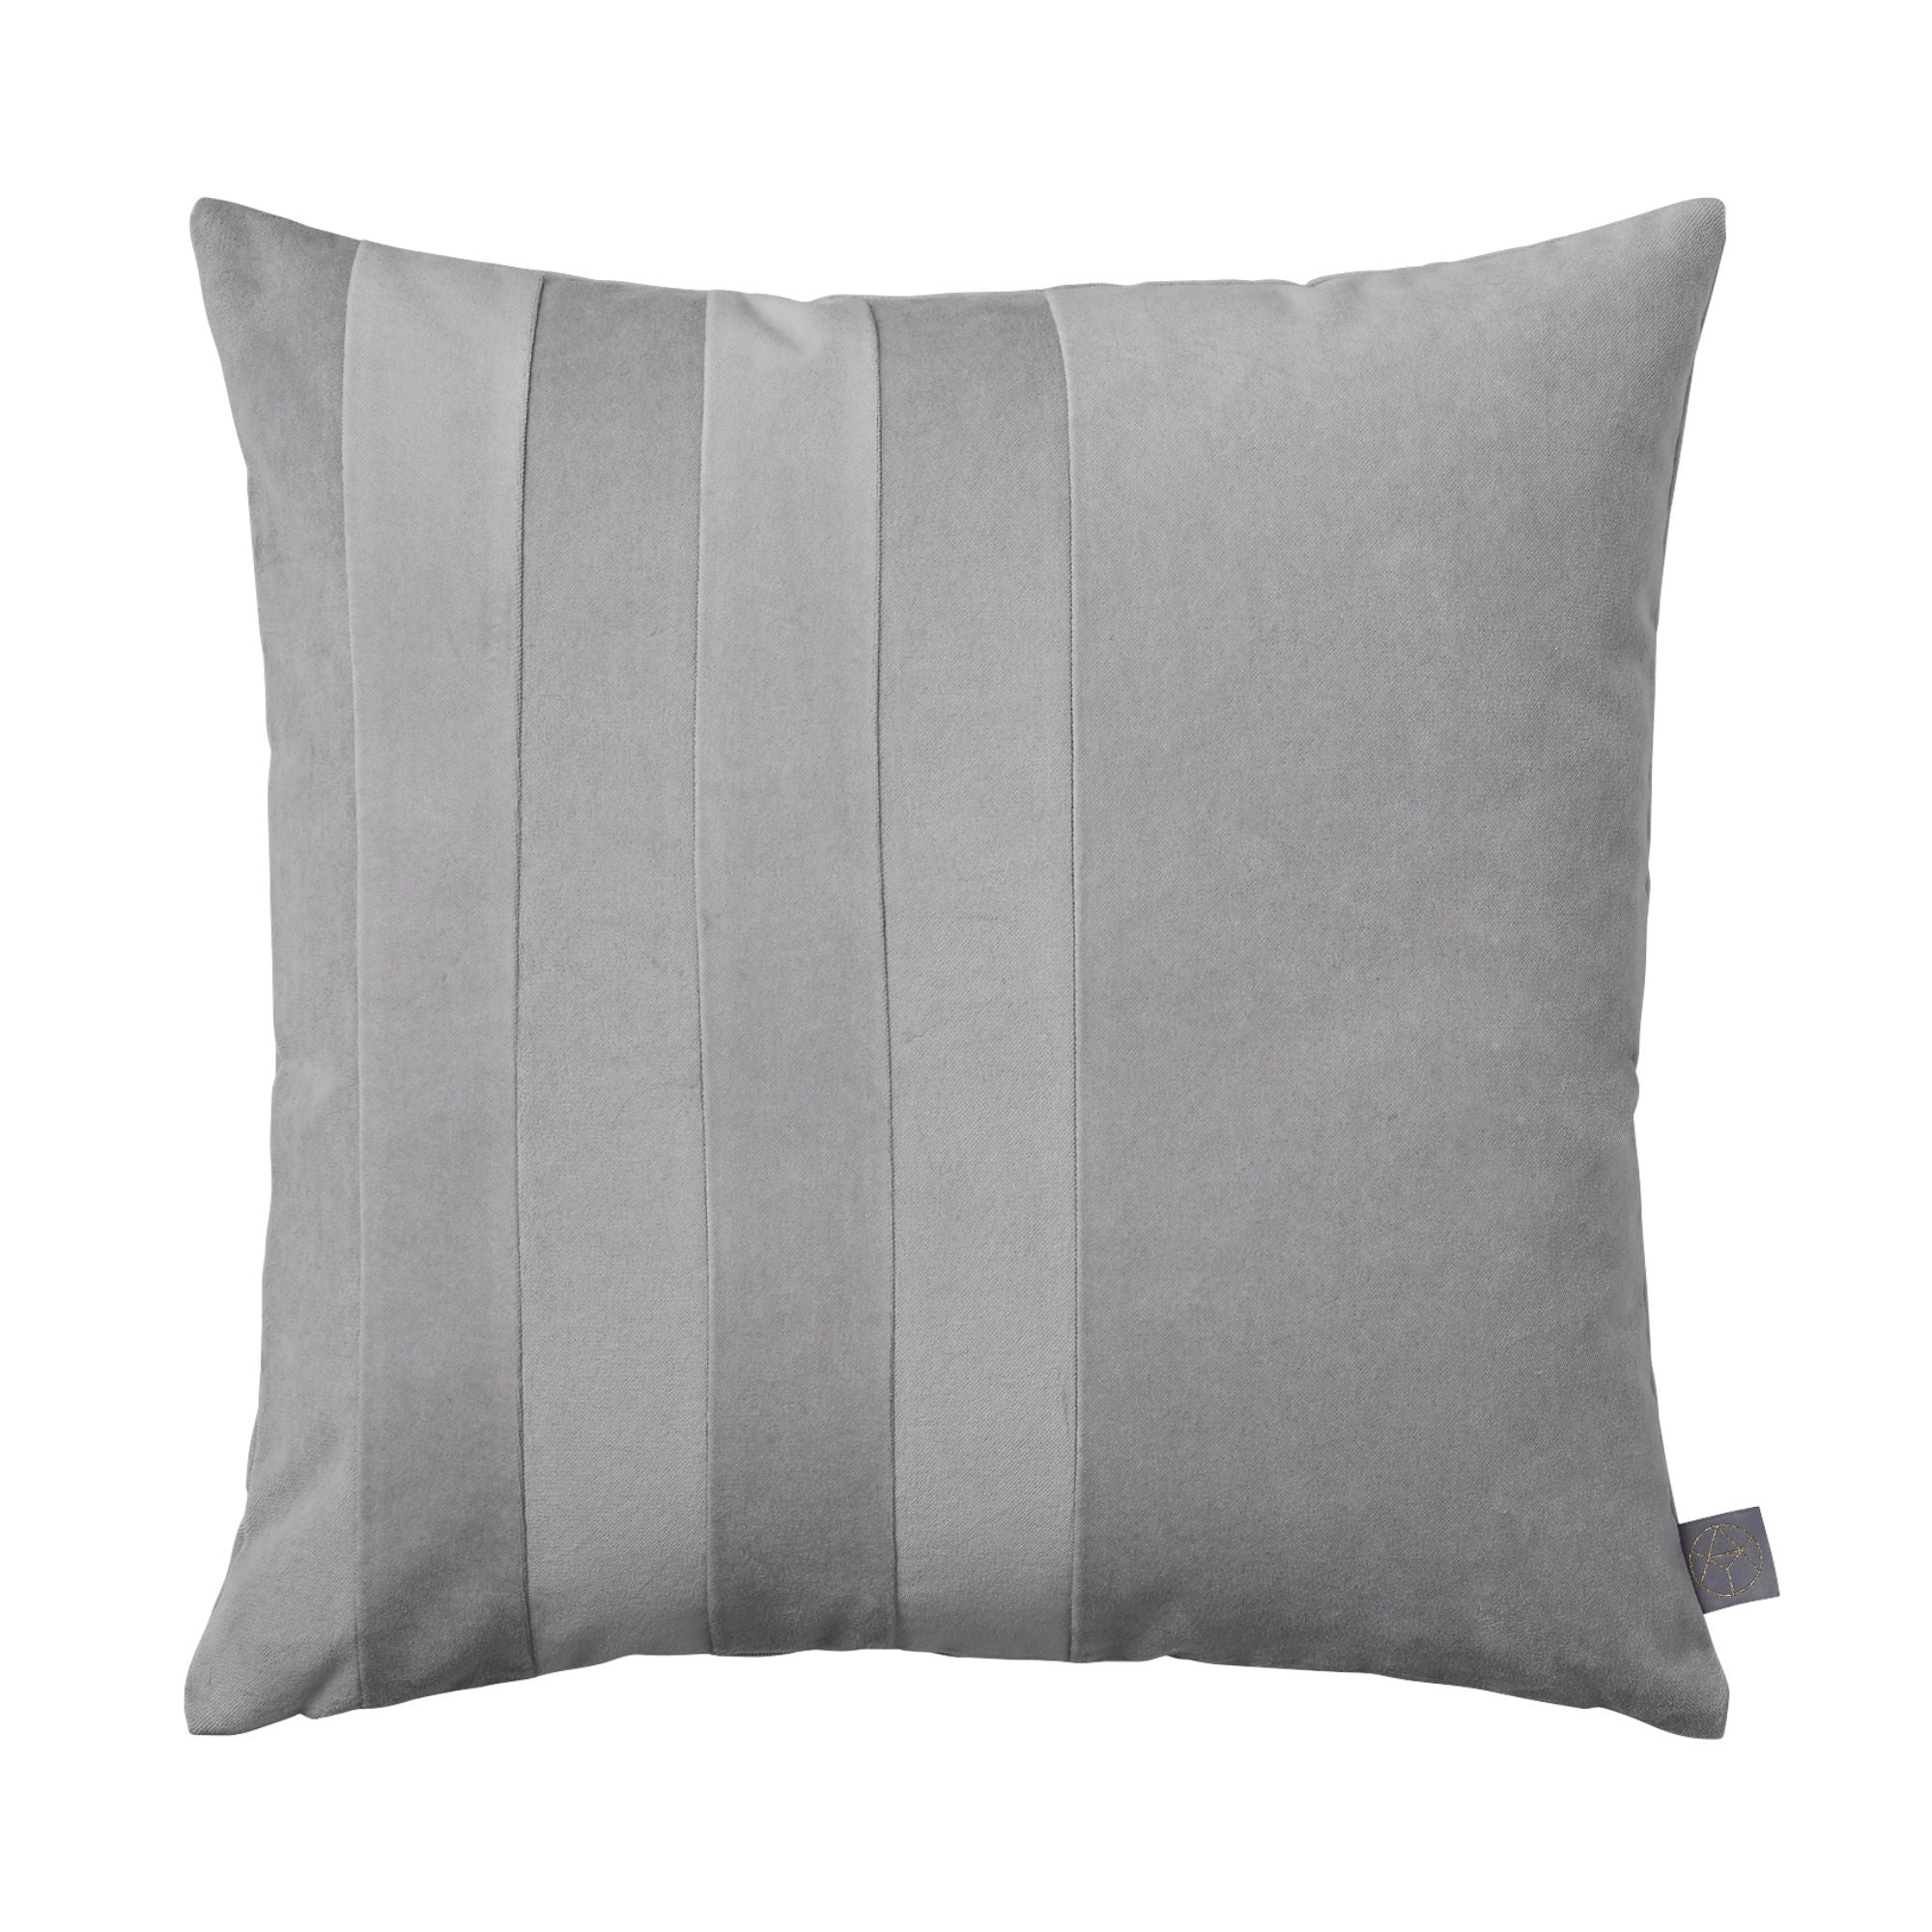 AYTM Sanati cushion , light grey